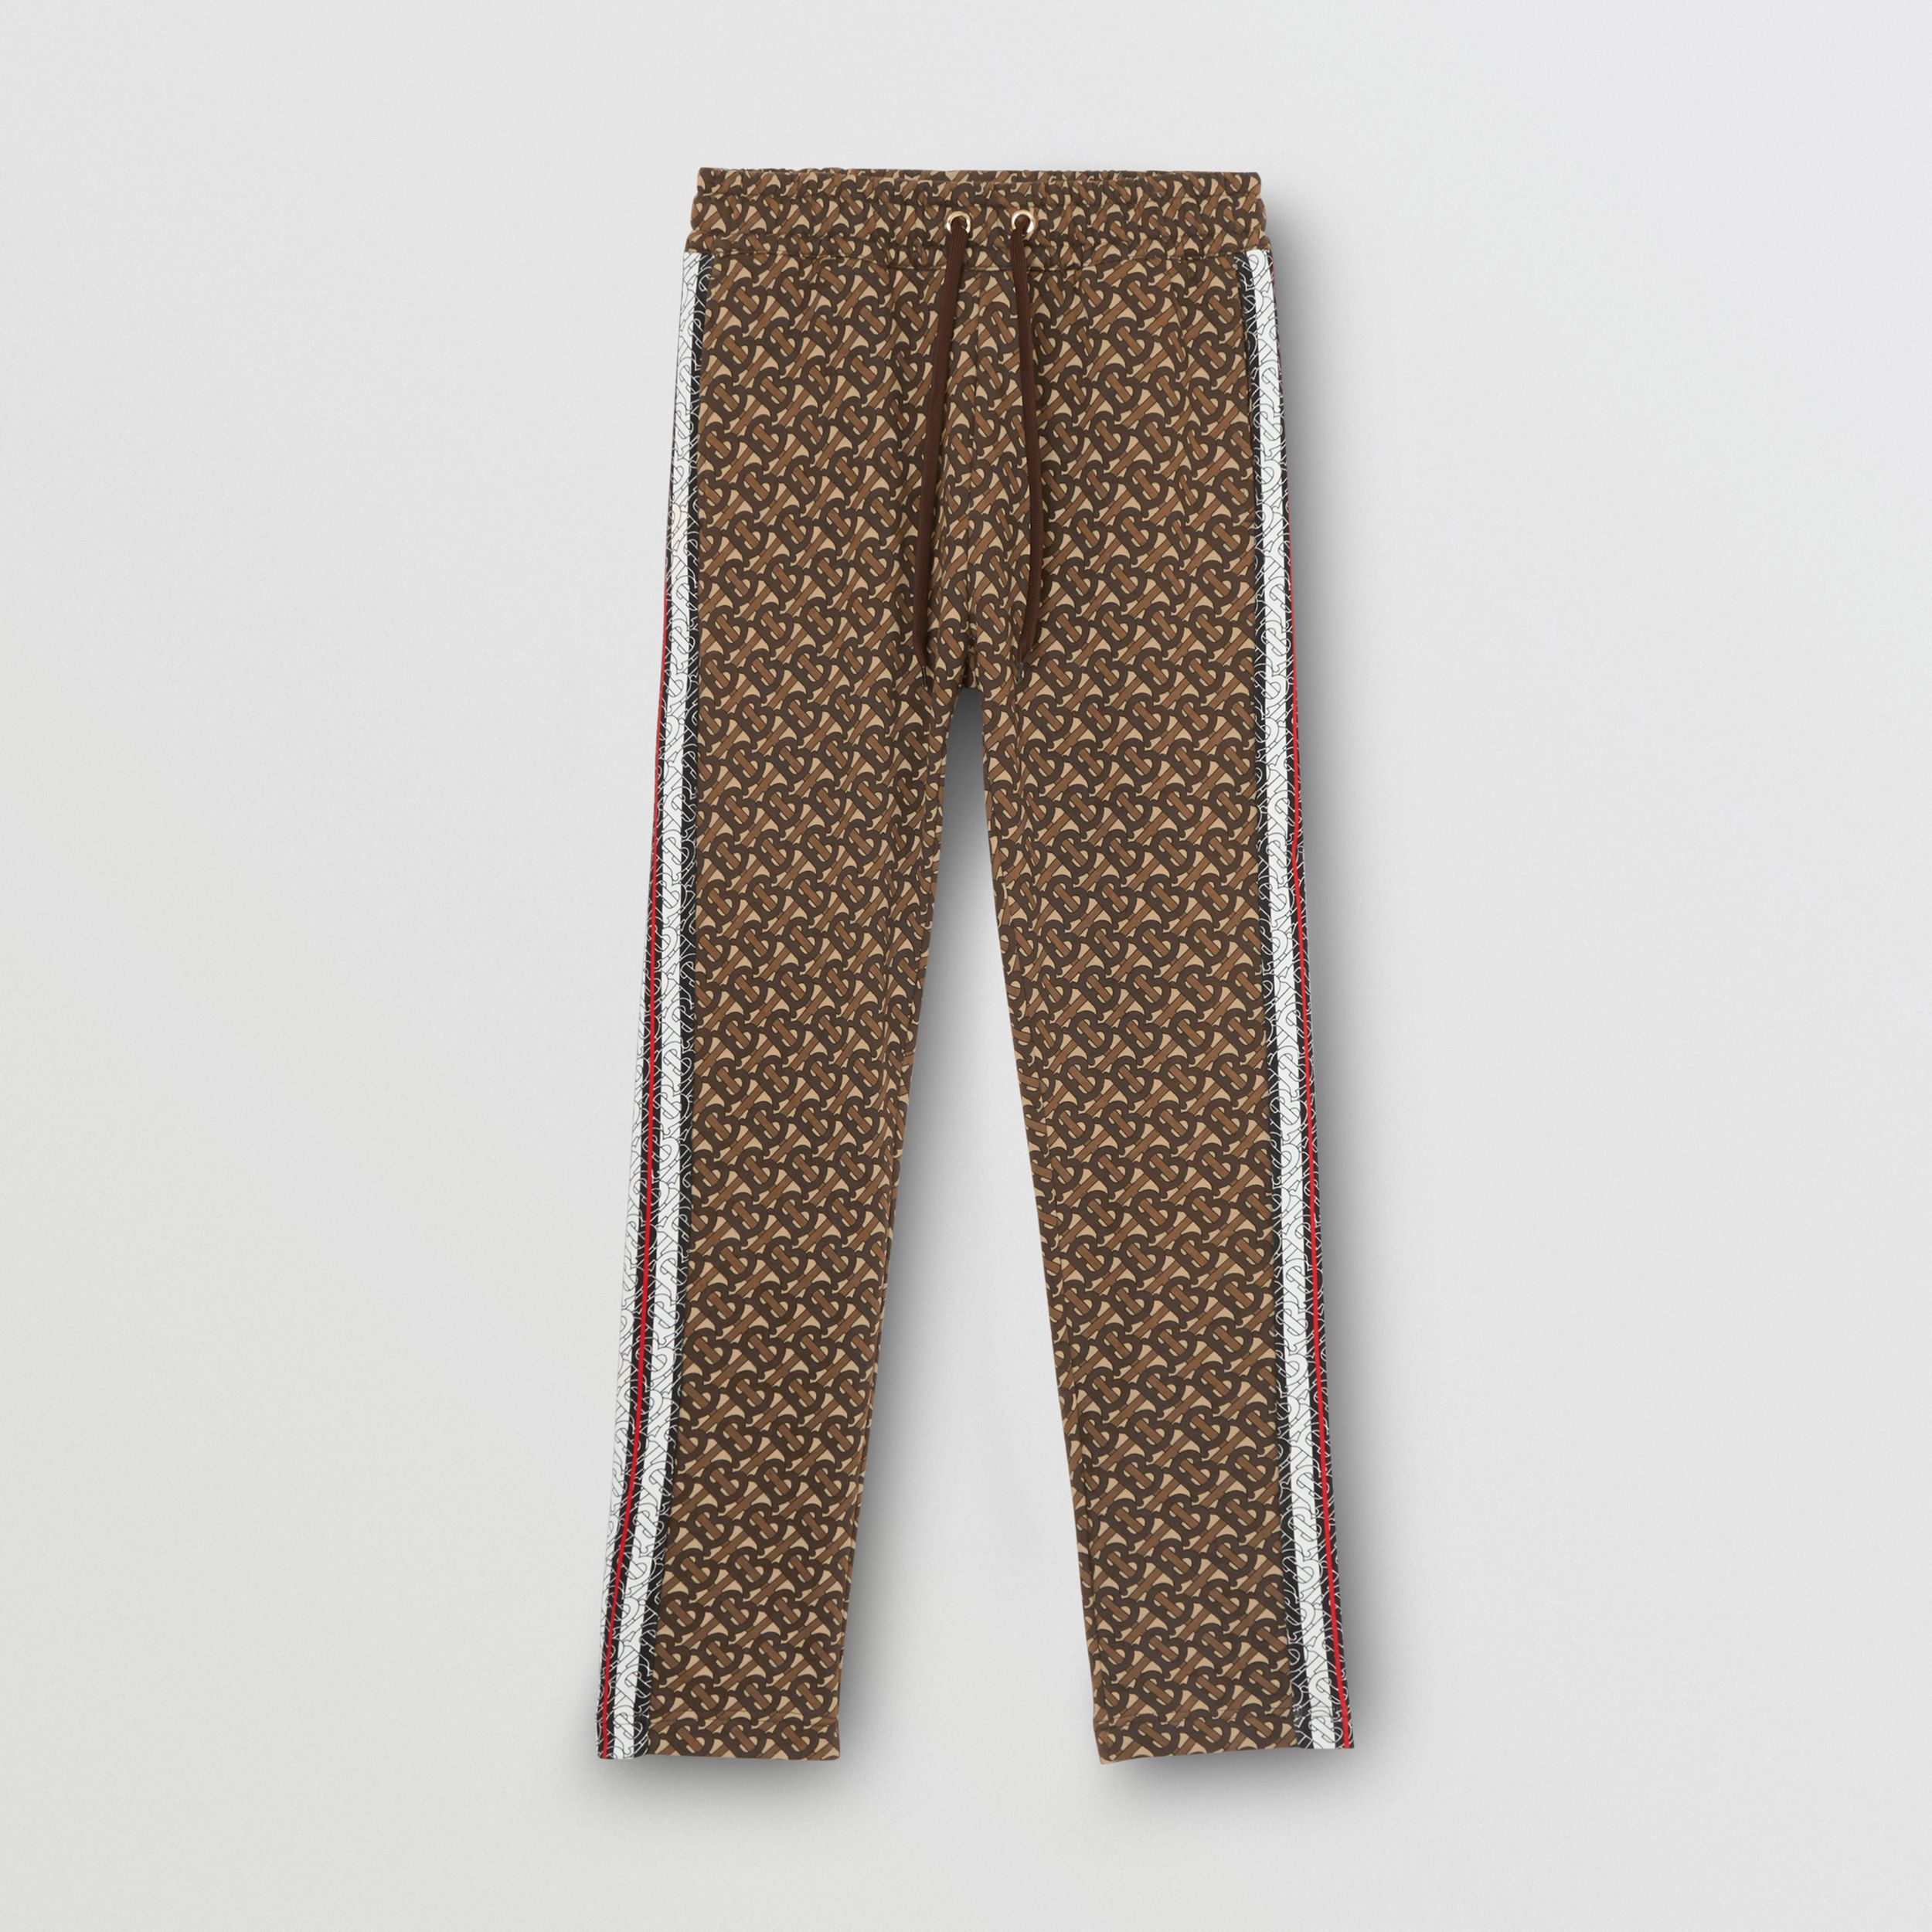 Monogram Stripe Print Cotton Trackpants in Bridle Brown - Women | Burberry - 3